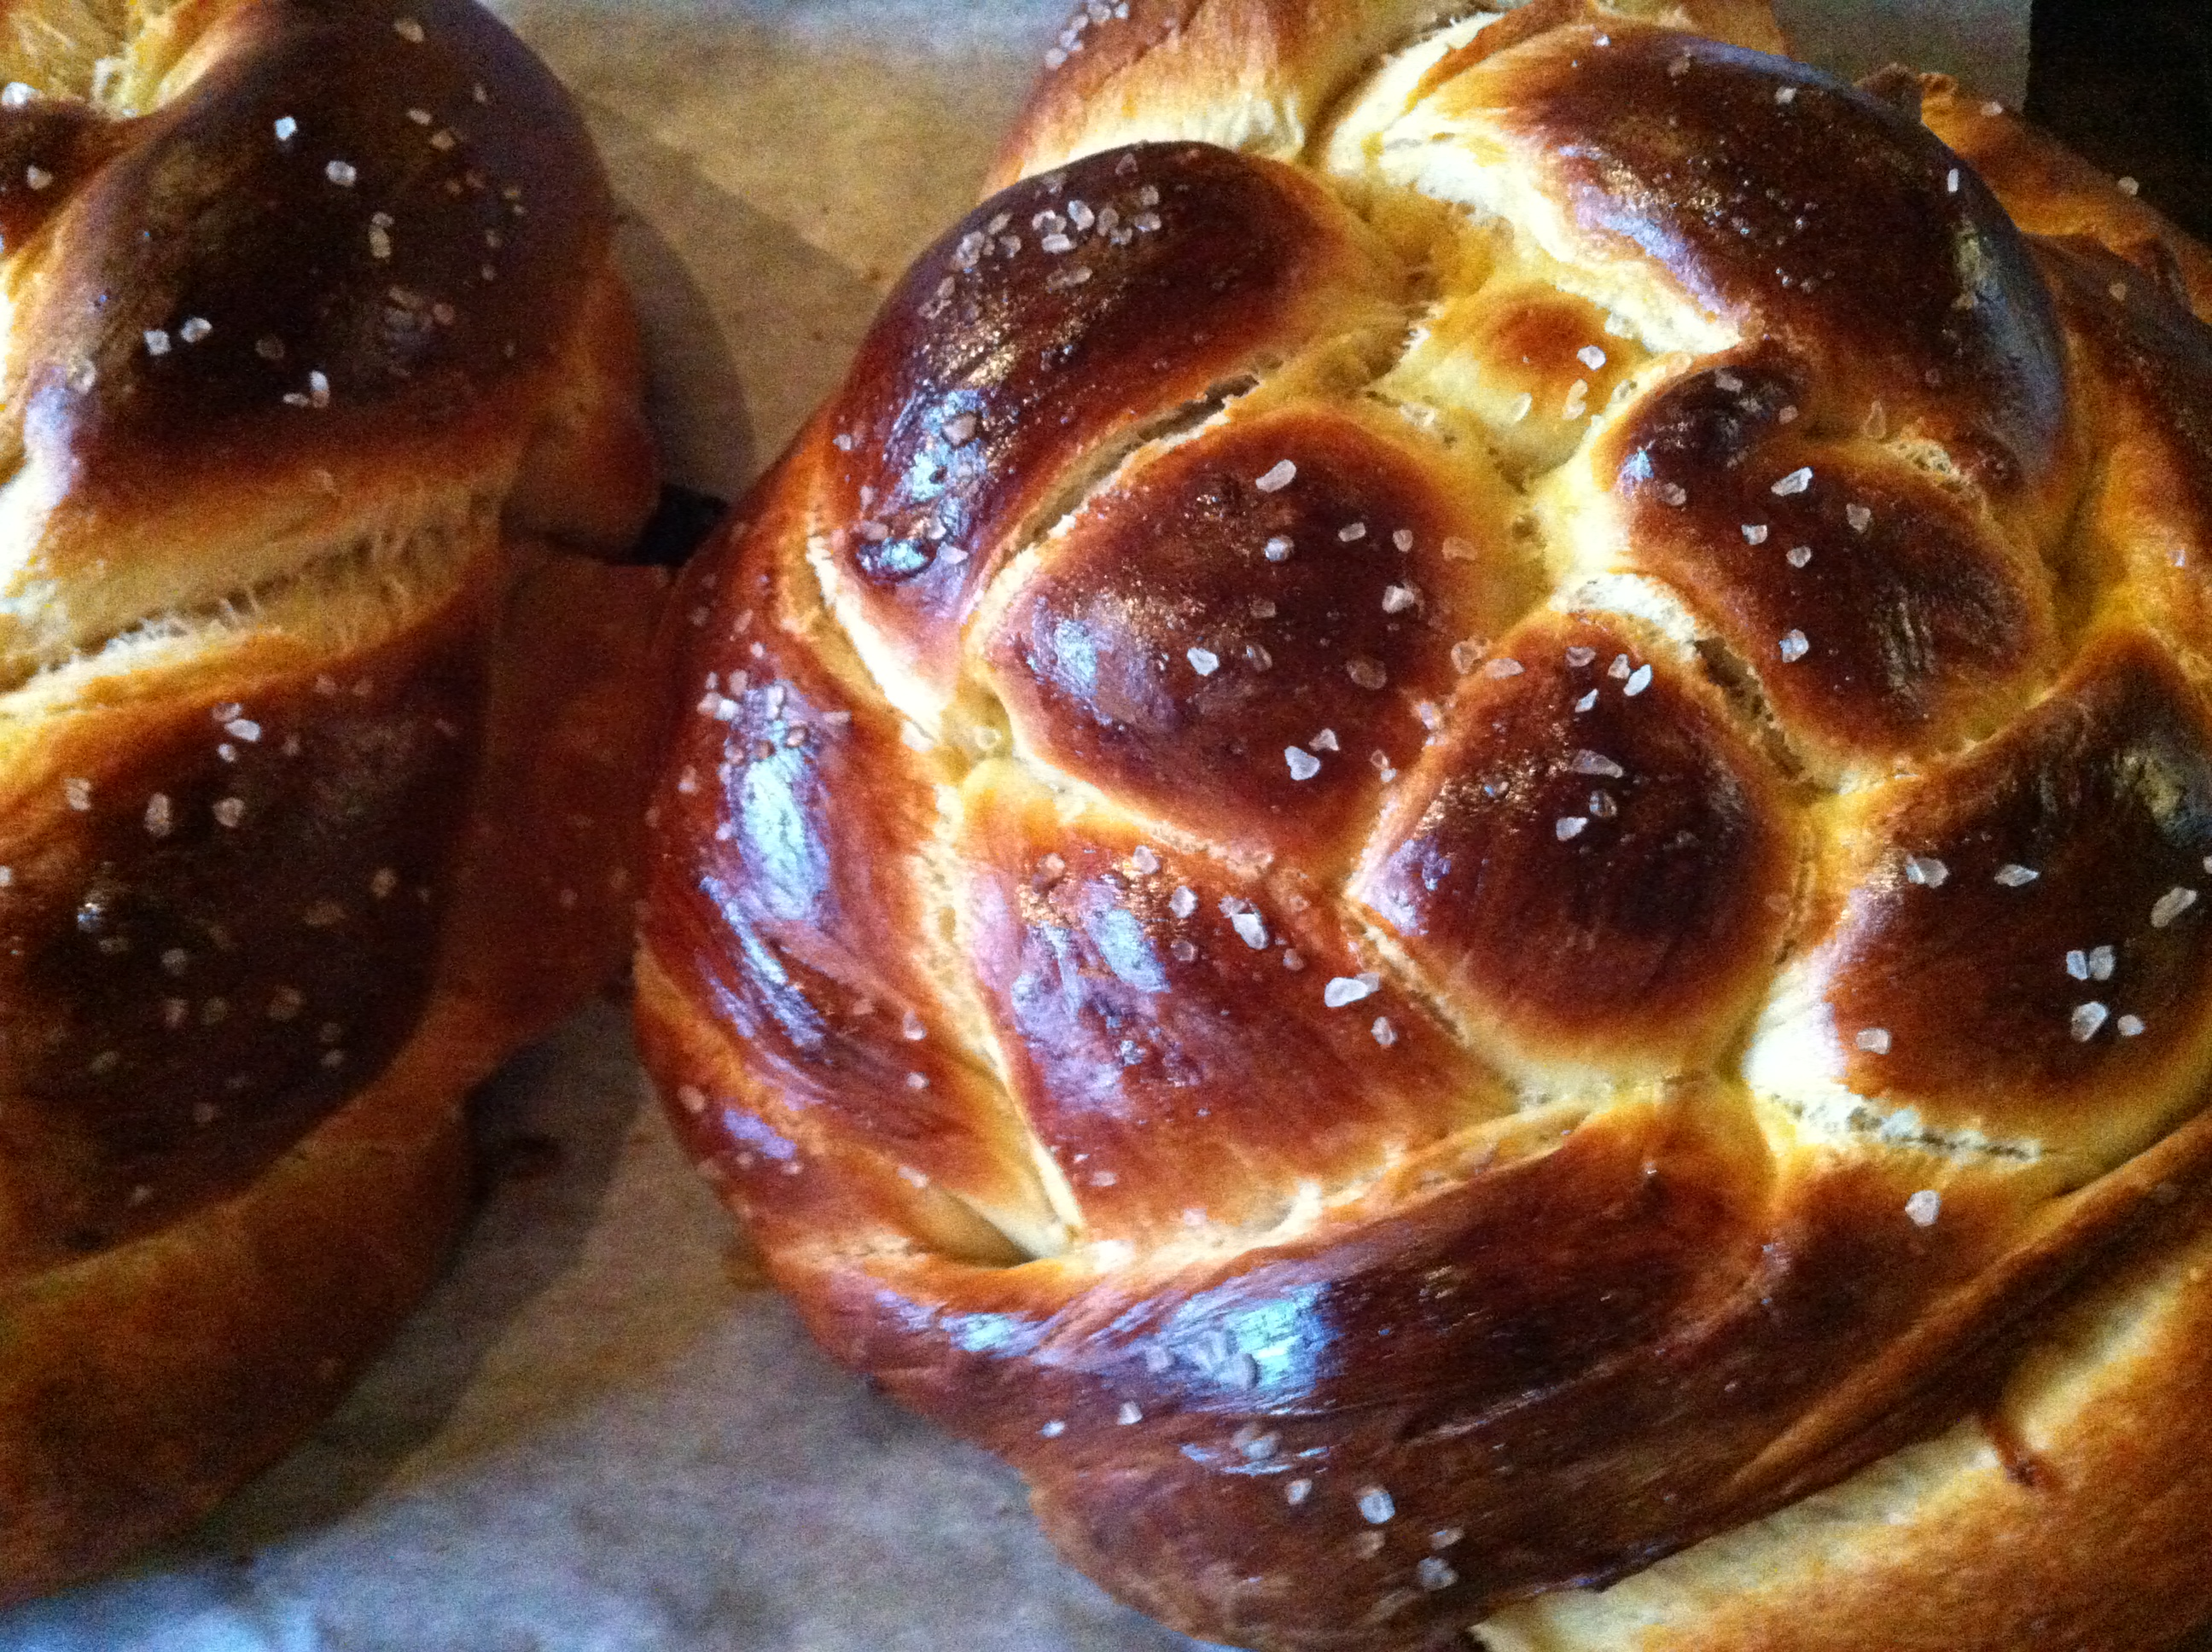 Fig, Olive Oil and Sea Salt Challah | Voila!